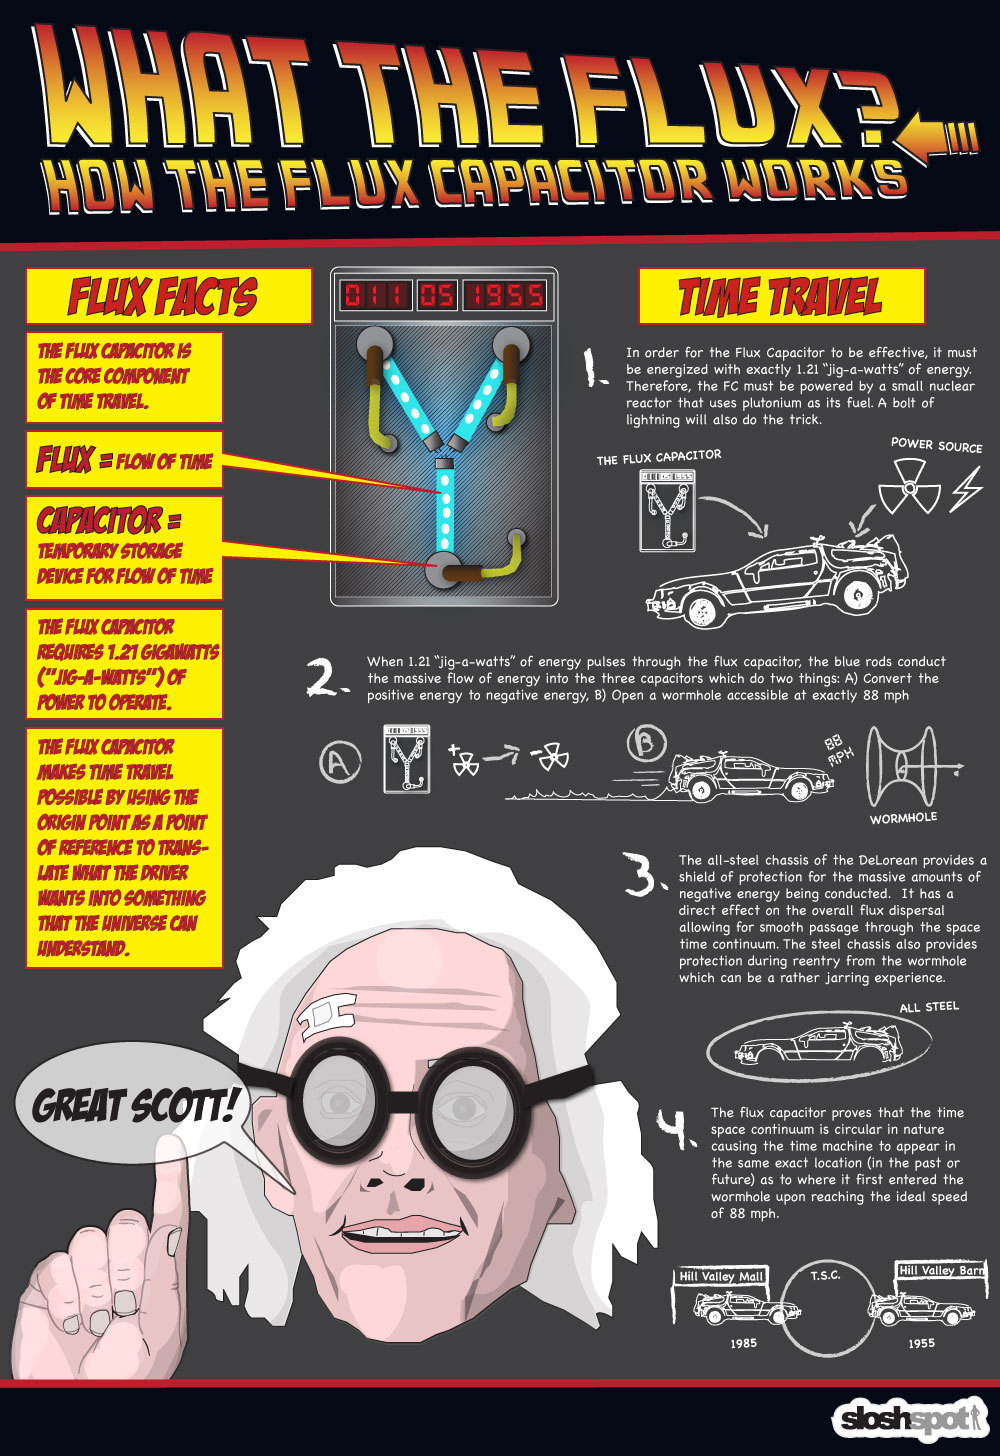 IMAGE: http://images.wikia.com/bttf/images/4/41/Flux-capacitor-back-to-the-future.jpg